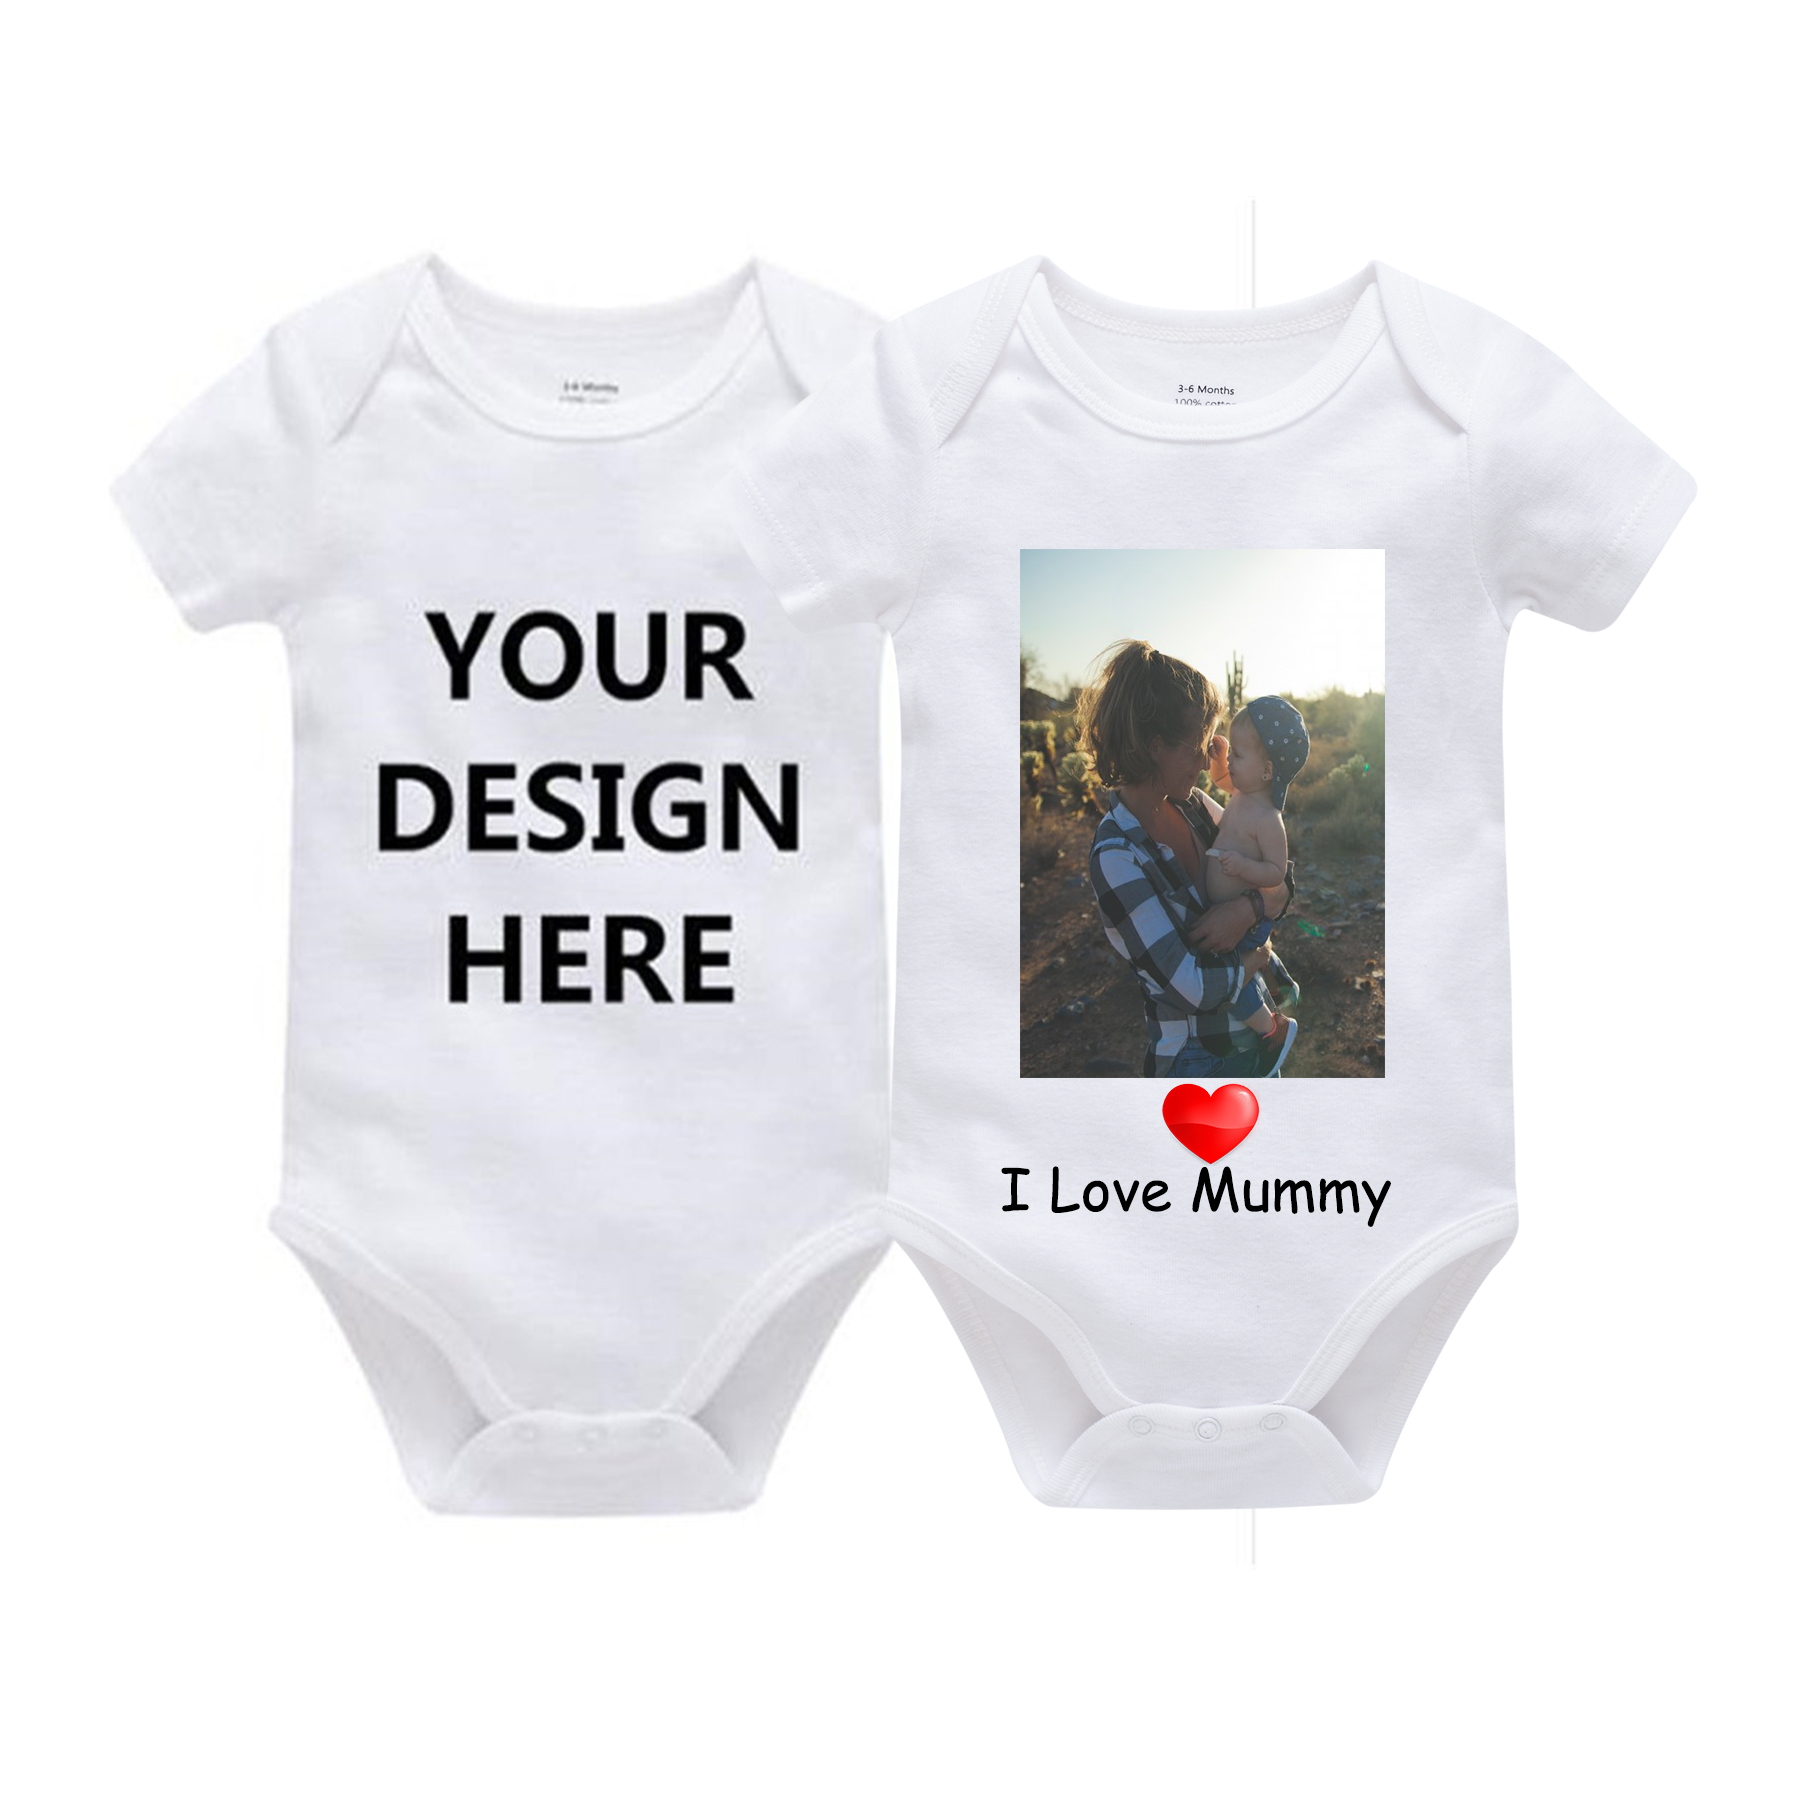 Custom Printed One Piece Outfits Cotton Newborn Boy Girl 0-24 Months White Body Bebes Blanco Roupa Menina Solid New Baby JumperCustom Printed One Piece Outfits Cotton Newborn Boy Girl 0-24 Months White Body Bebes Blanco Roupa Menina Solid New Baby Jumper